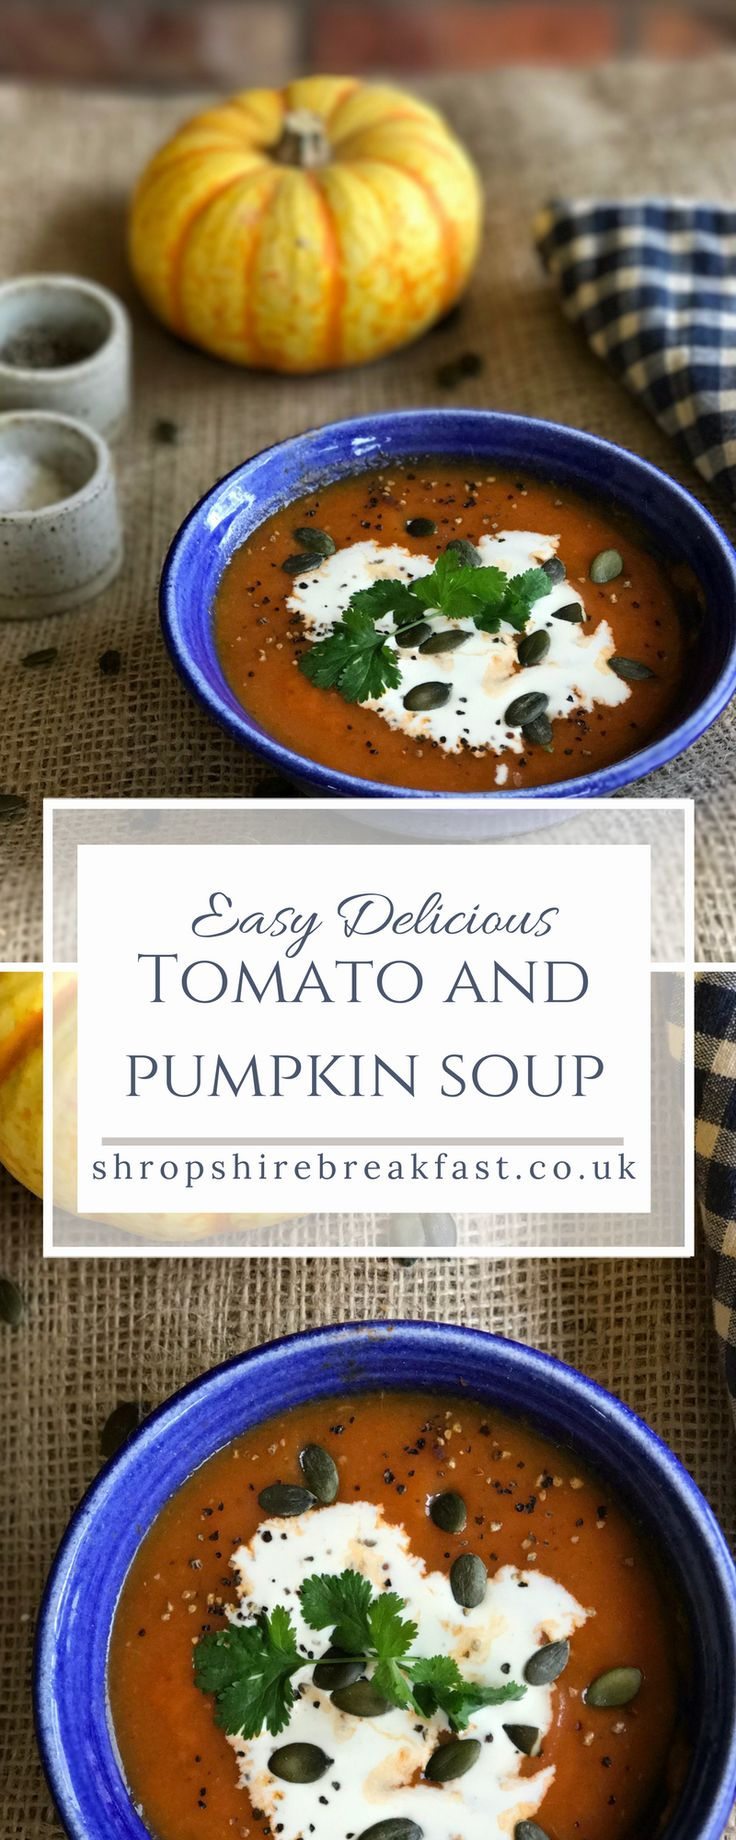 Autumn recipes | An easy and delicious pumpkin and tomato soup recipe | very quick and easy to make | only 70 calories per bowl | can also be made with courgettes or marrows | try it today!